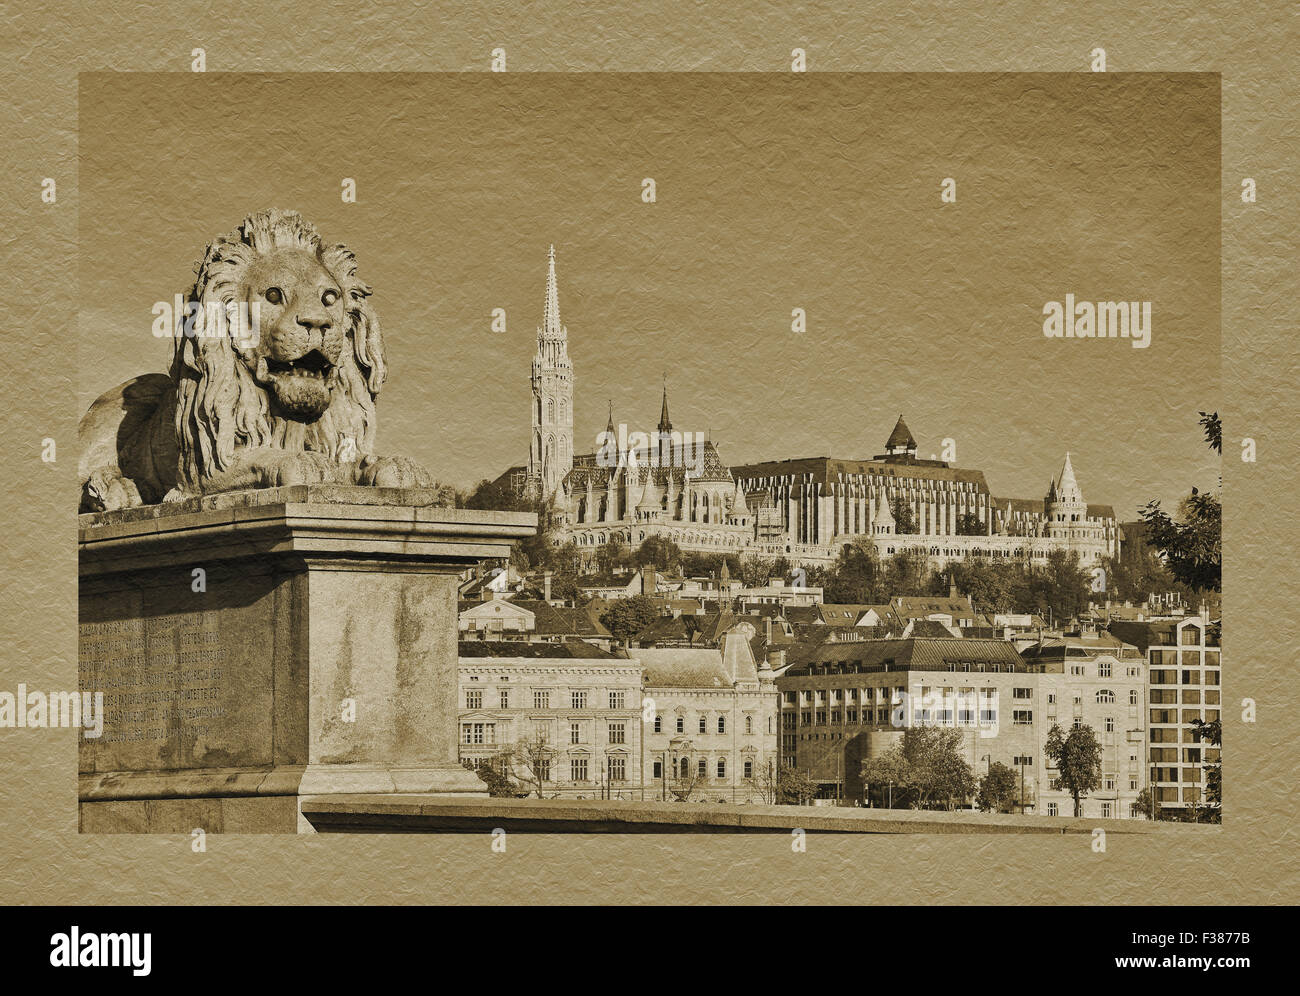 View from Szechenyi Chain Bridge to Fishermens Bastion and Matthias Church, Budapest, Hungary, Europe - Stock Image